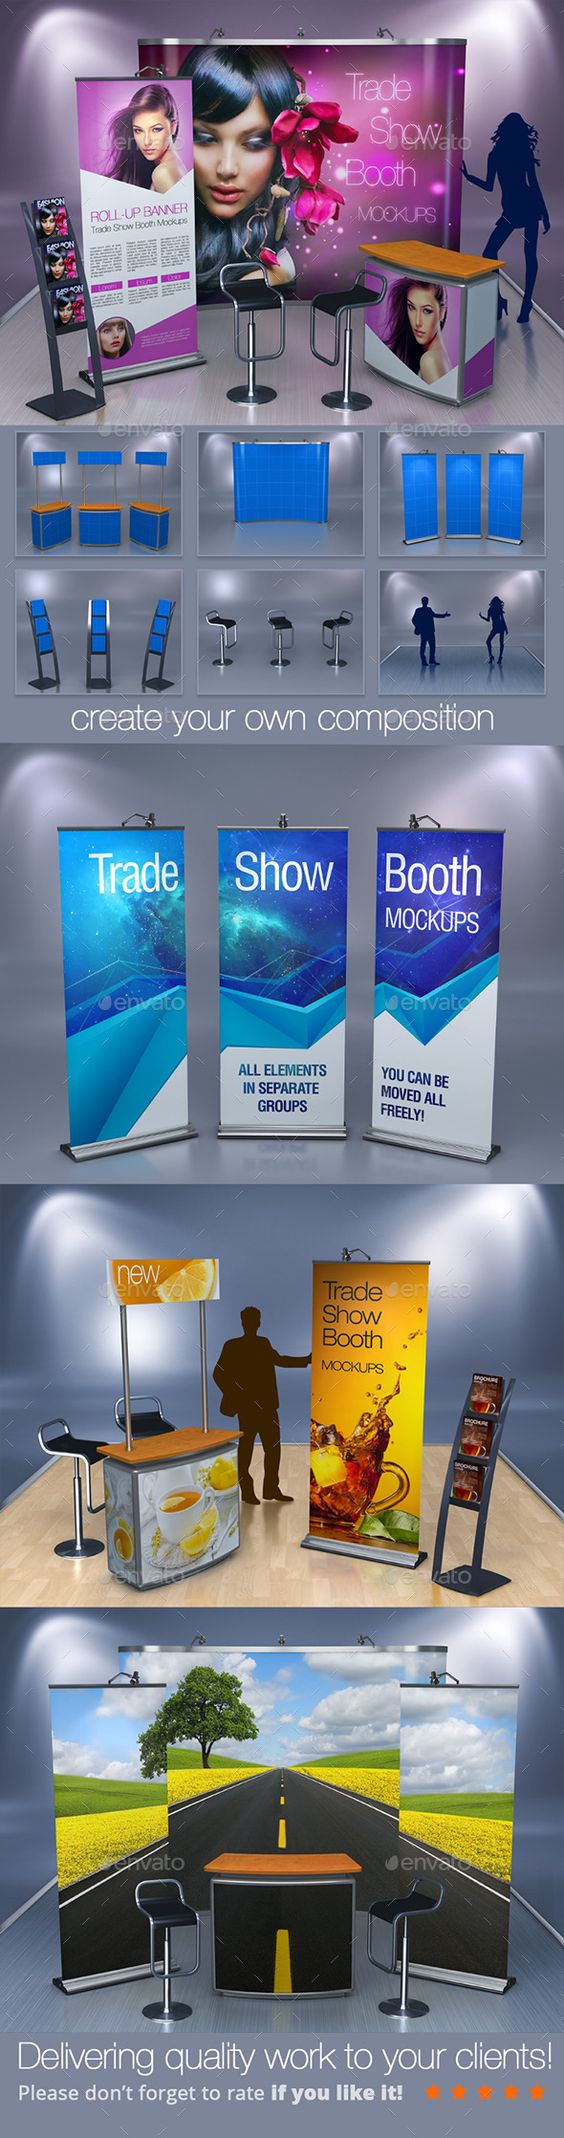 Trade Exhibition Stand Mockup Free Download : Trade show booths booth and boots on pinterest